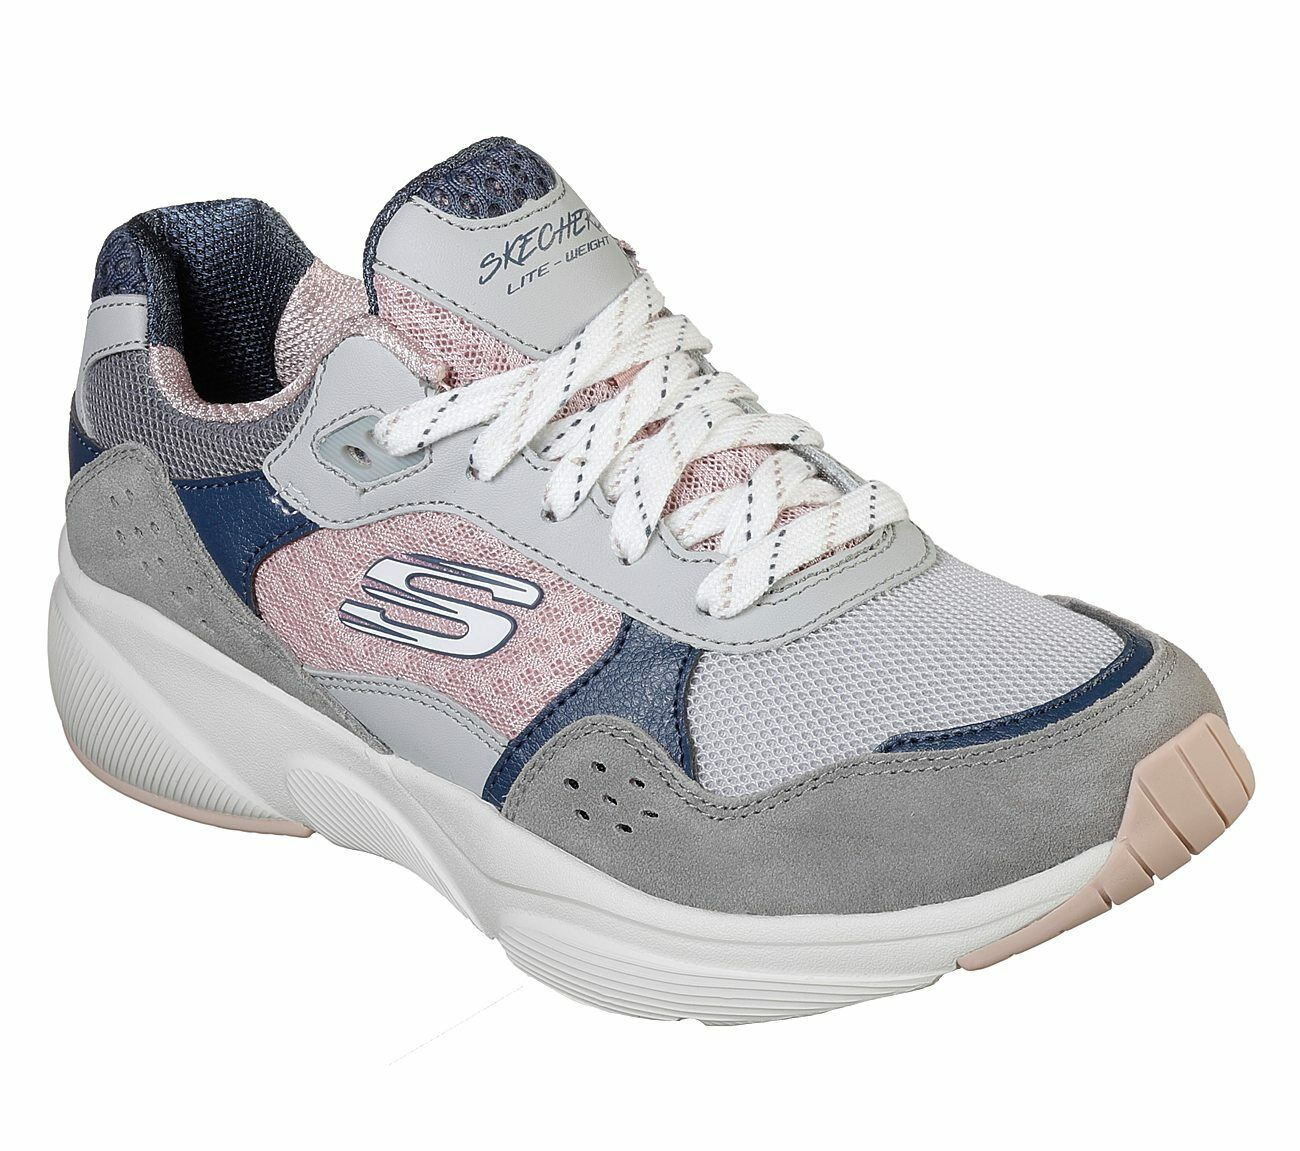 Skechers 13019 GYPK Grey Pink Colourblocked Women's Trainers